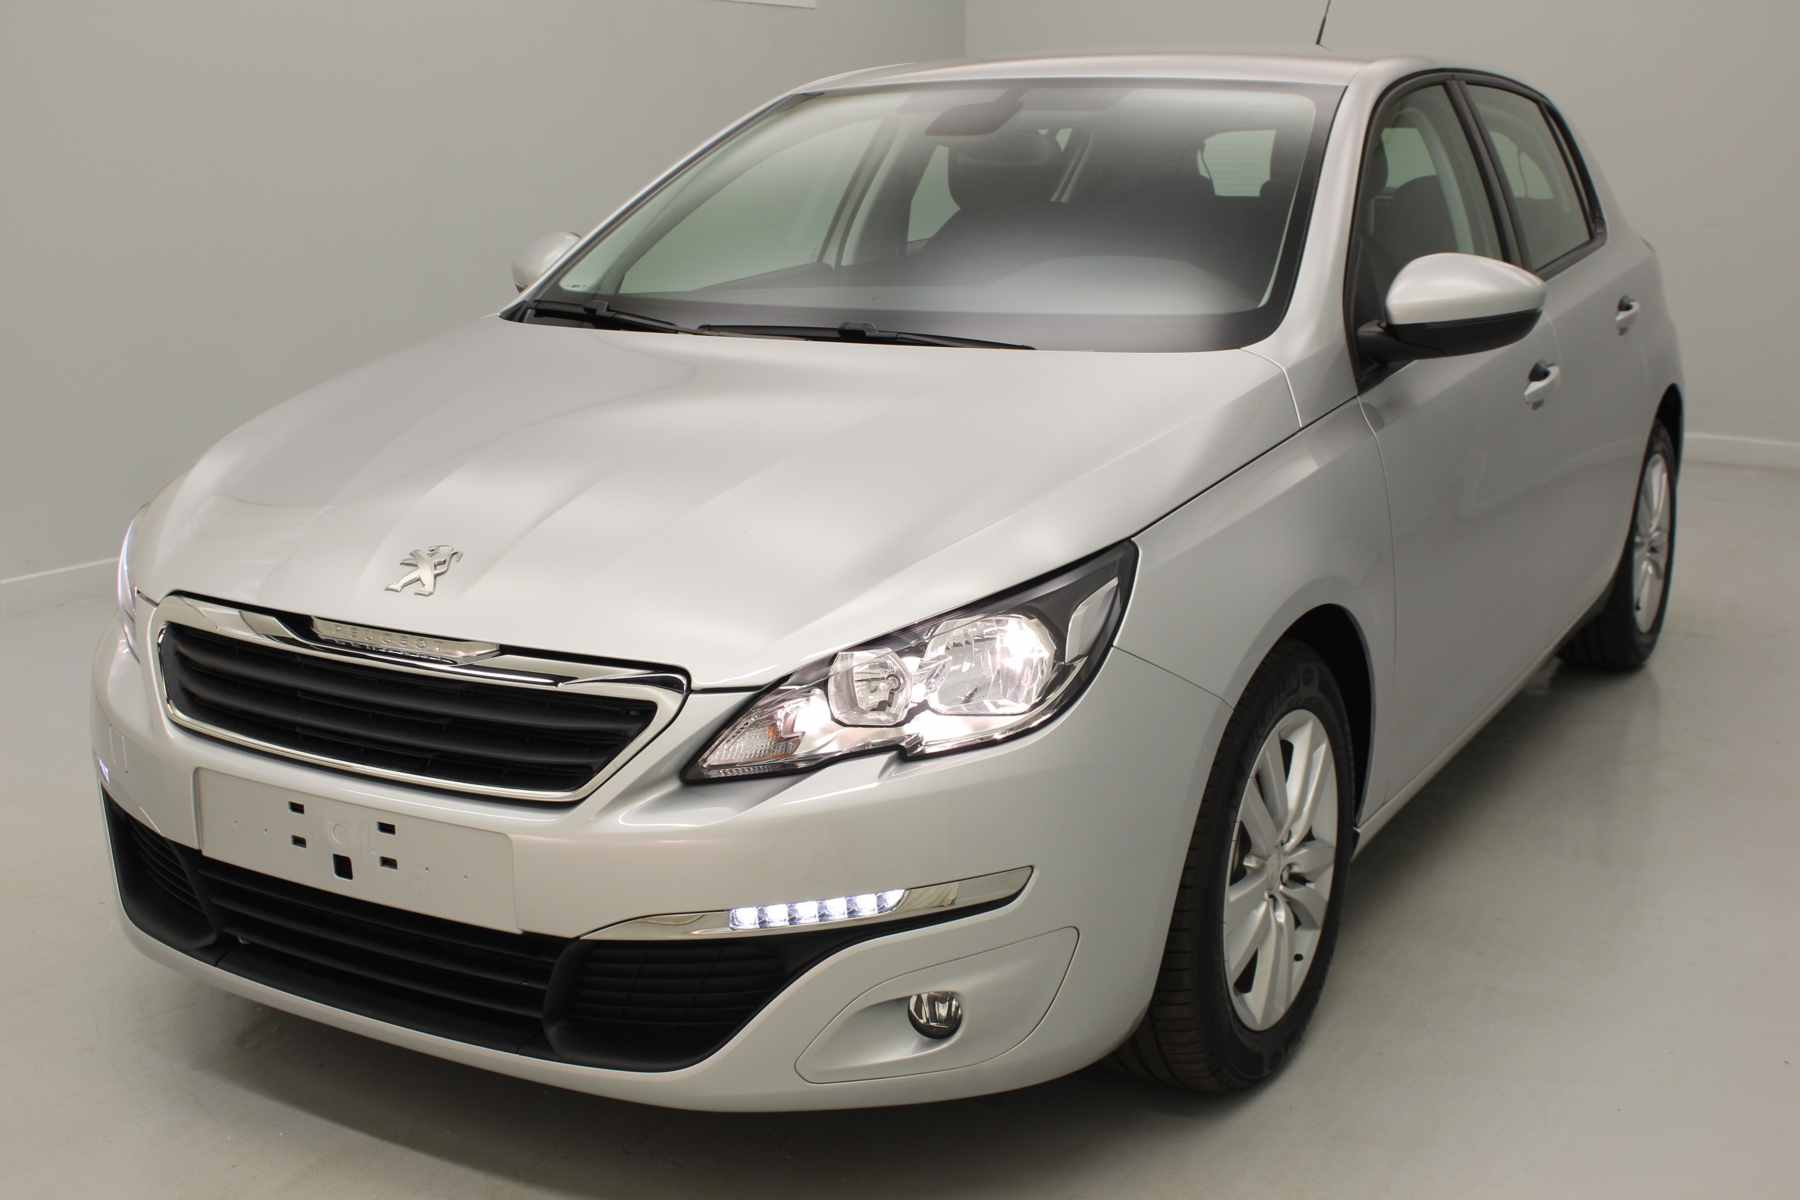 PEUGEOT 308 1.6 BlueHDi 120ch S&S BVM6 Active Gris Aluminium + Navigation avec options